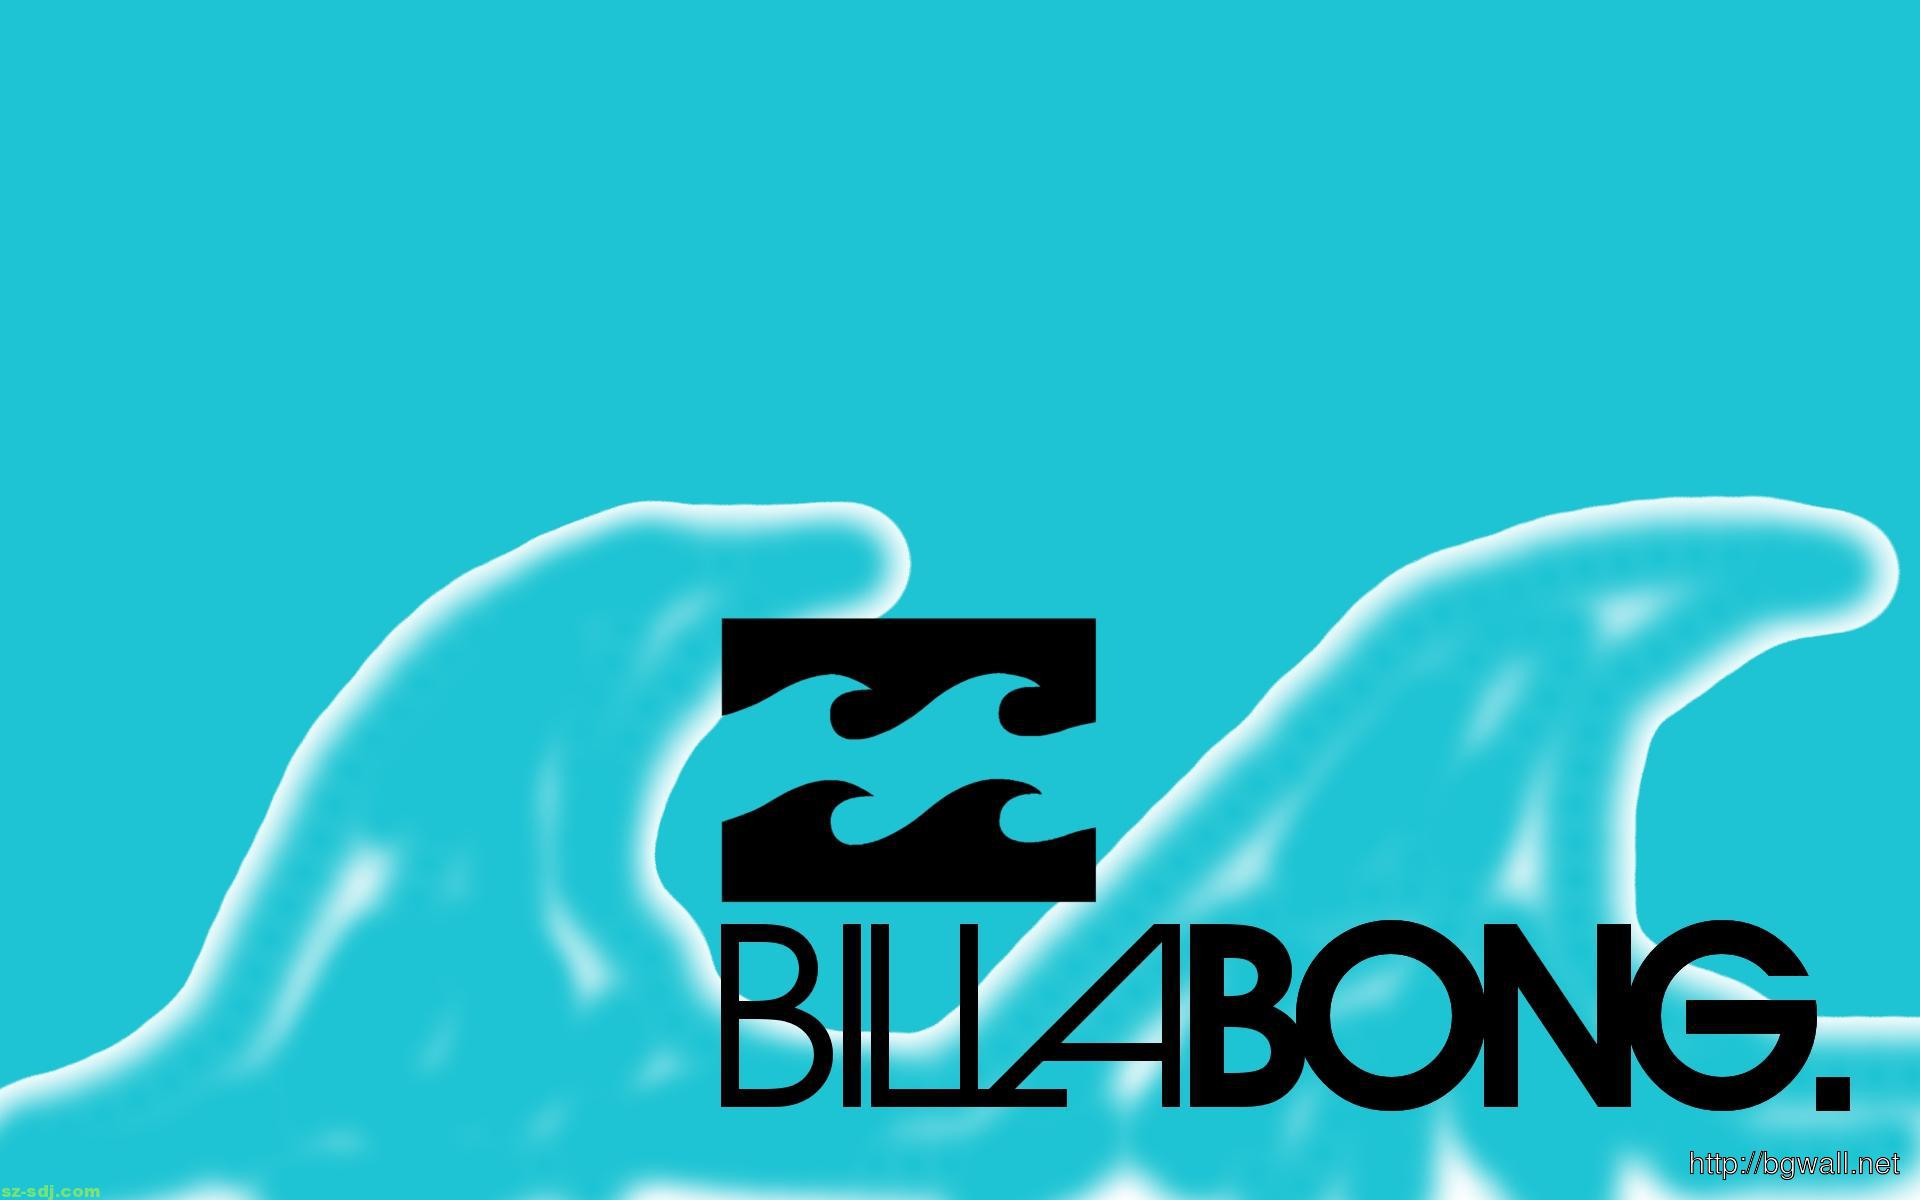 best-billabong-logo-wallpaper-hd